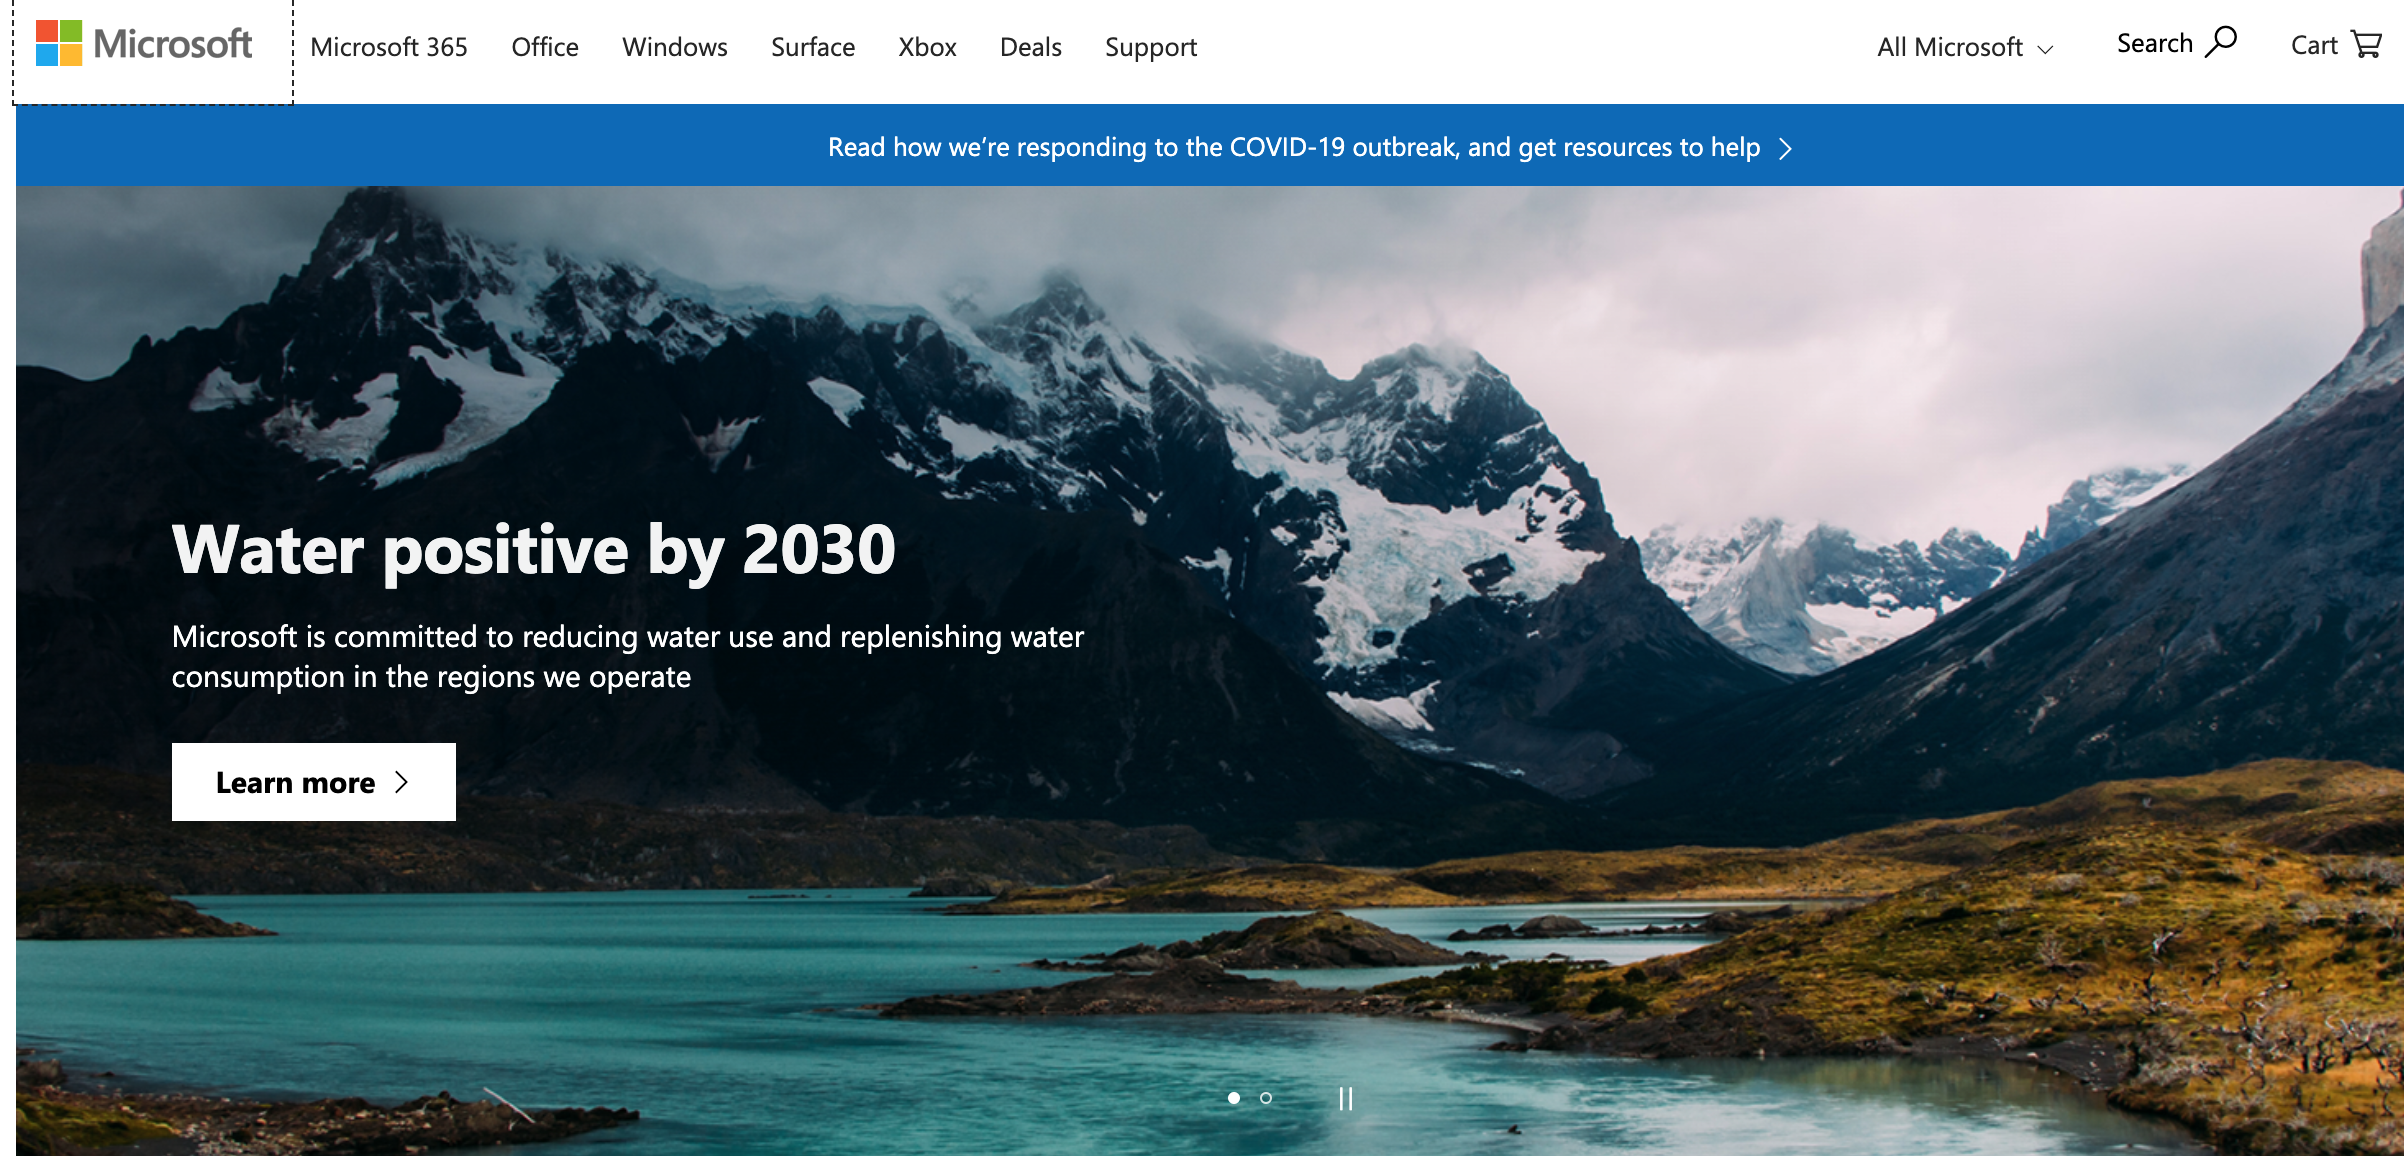 Microsoft's home page with COVID-19 response